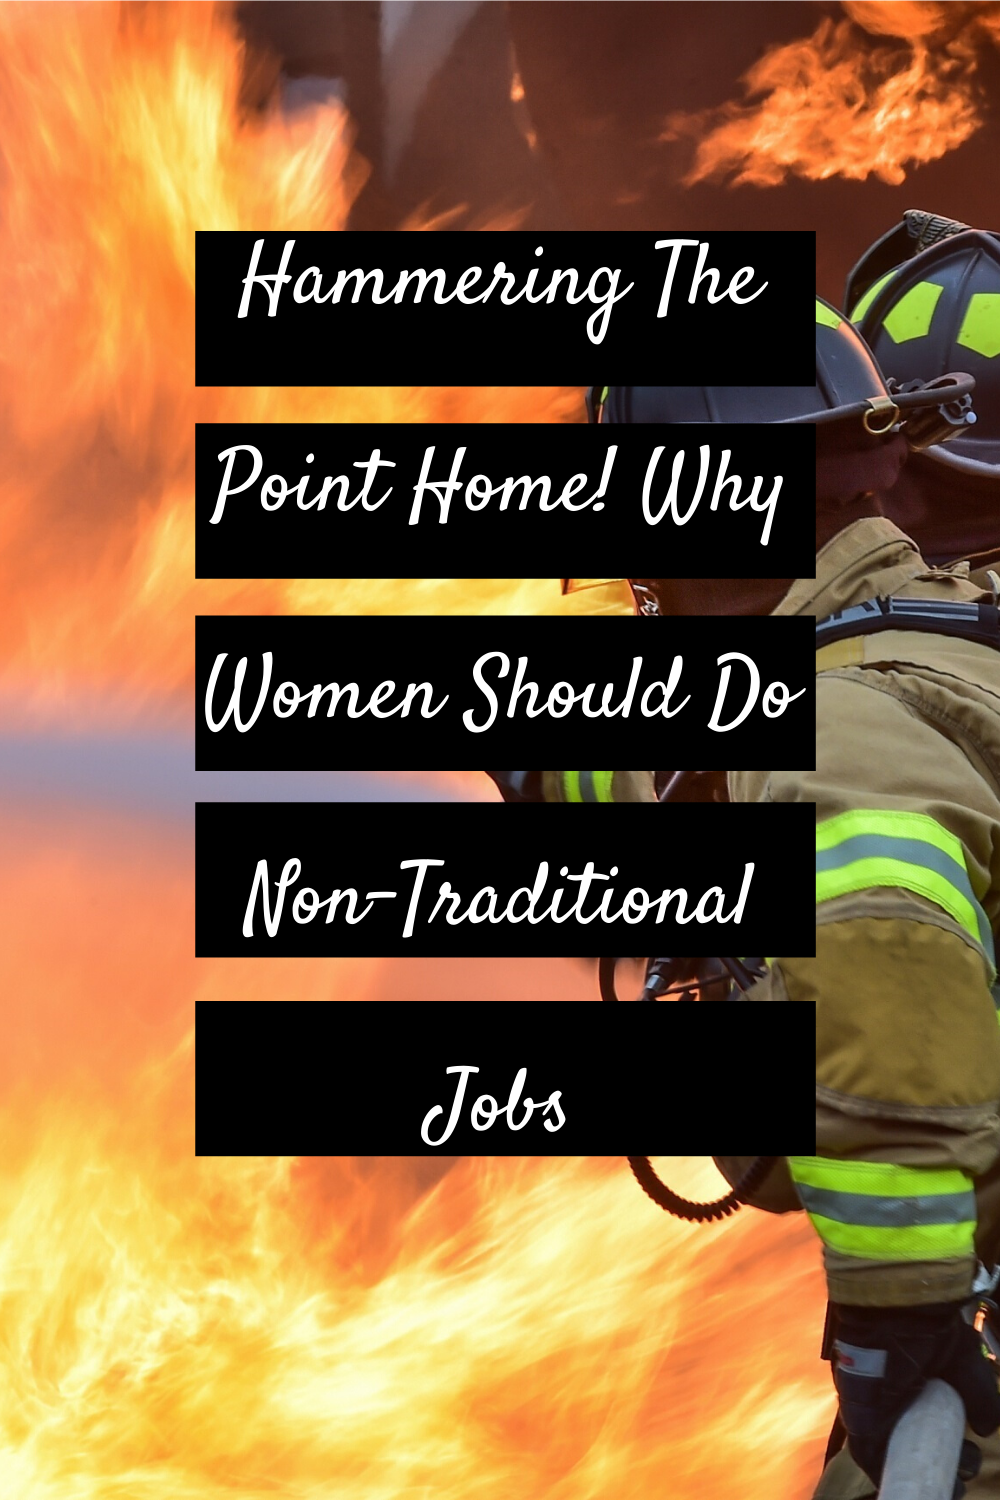 Hammering The Point Home! Why Women Should Do Non-Traditional Jobs